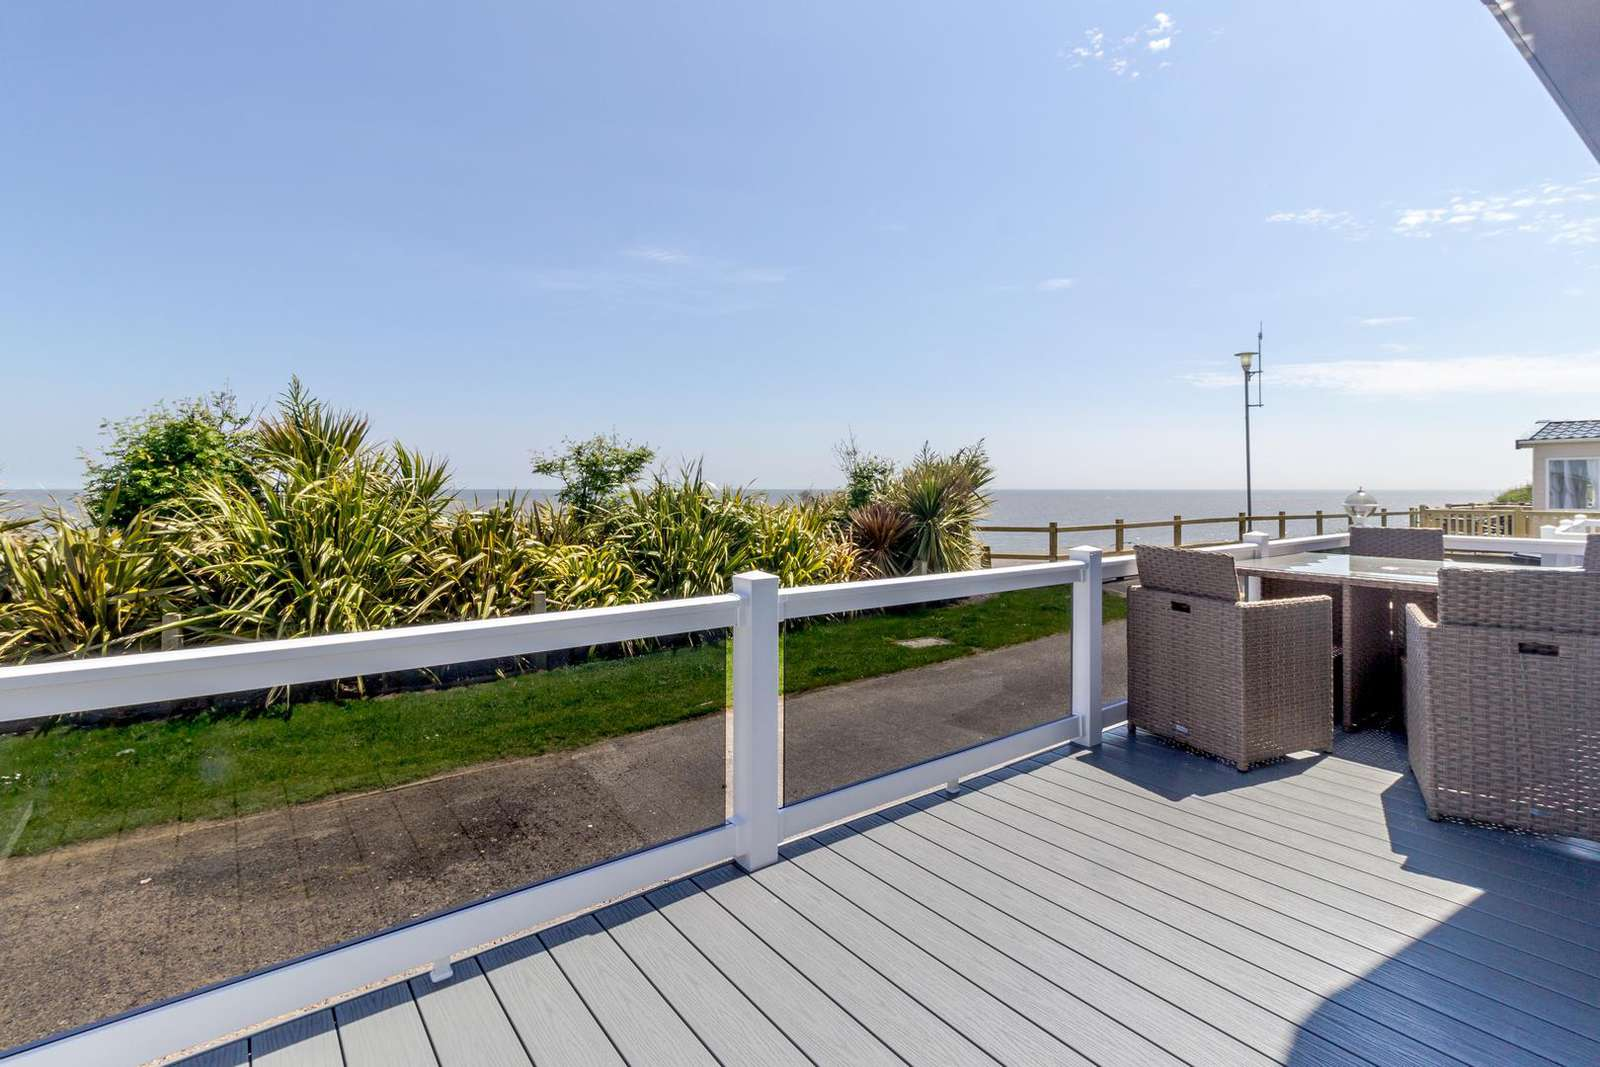 68032CR – CR area, 2 bed, 6 berth lodge with full sea views and decking. Platinum Deluxe rated. - property